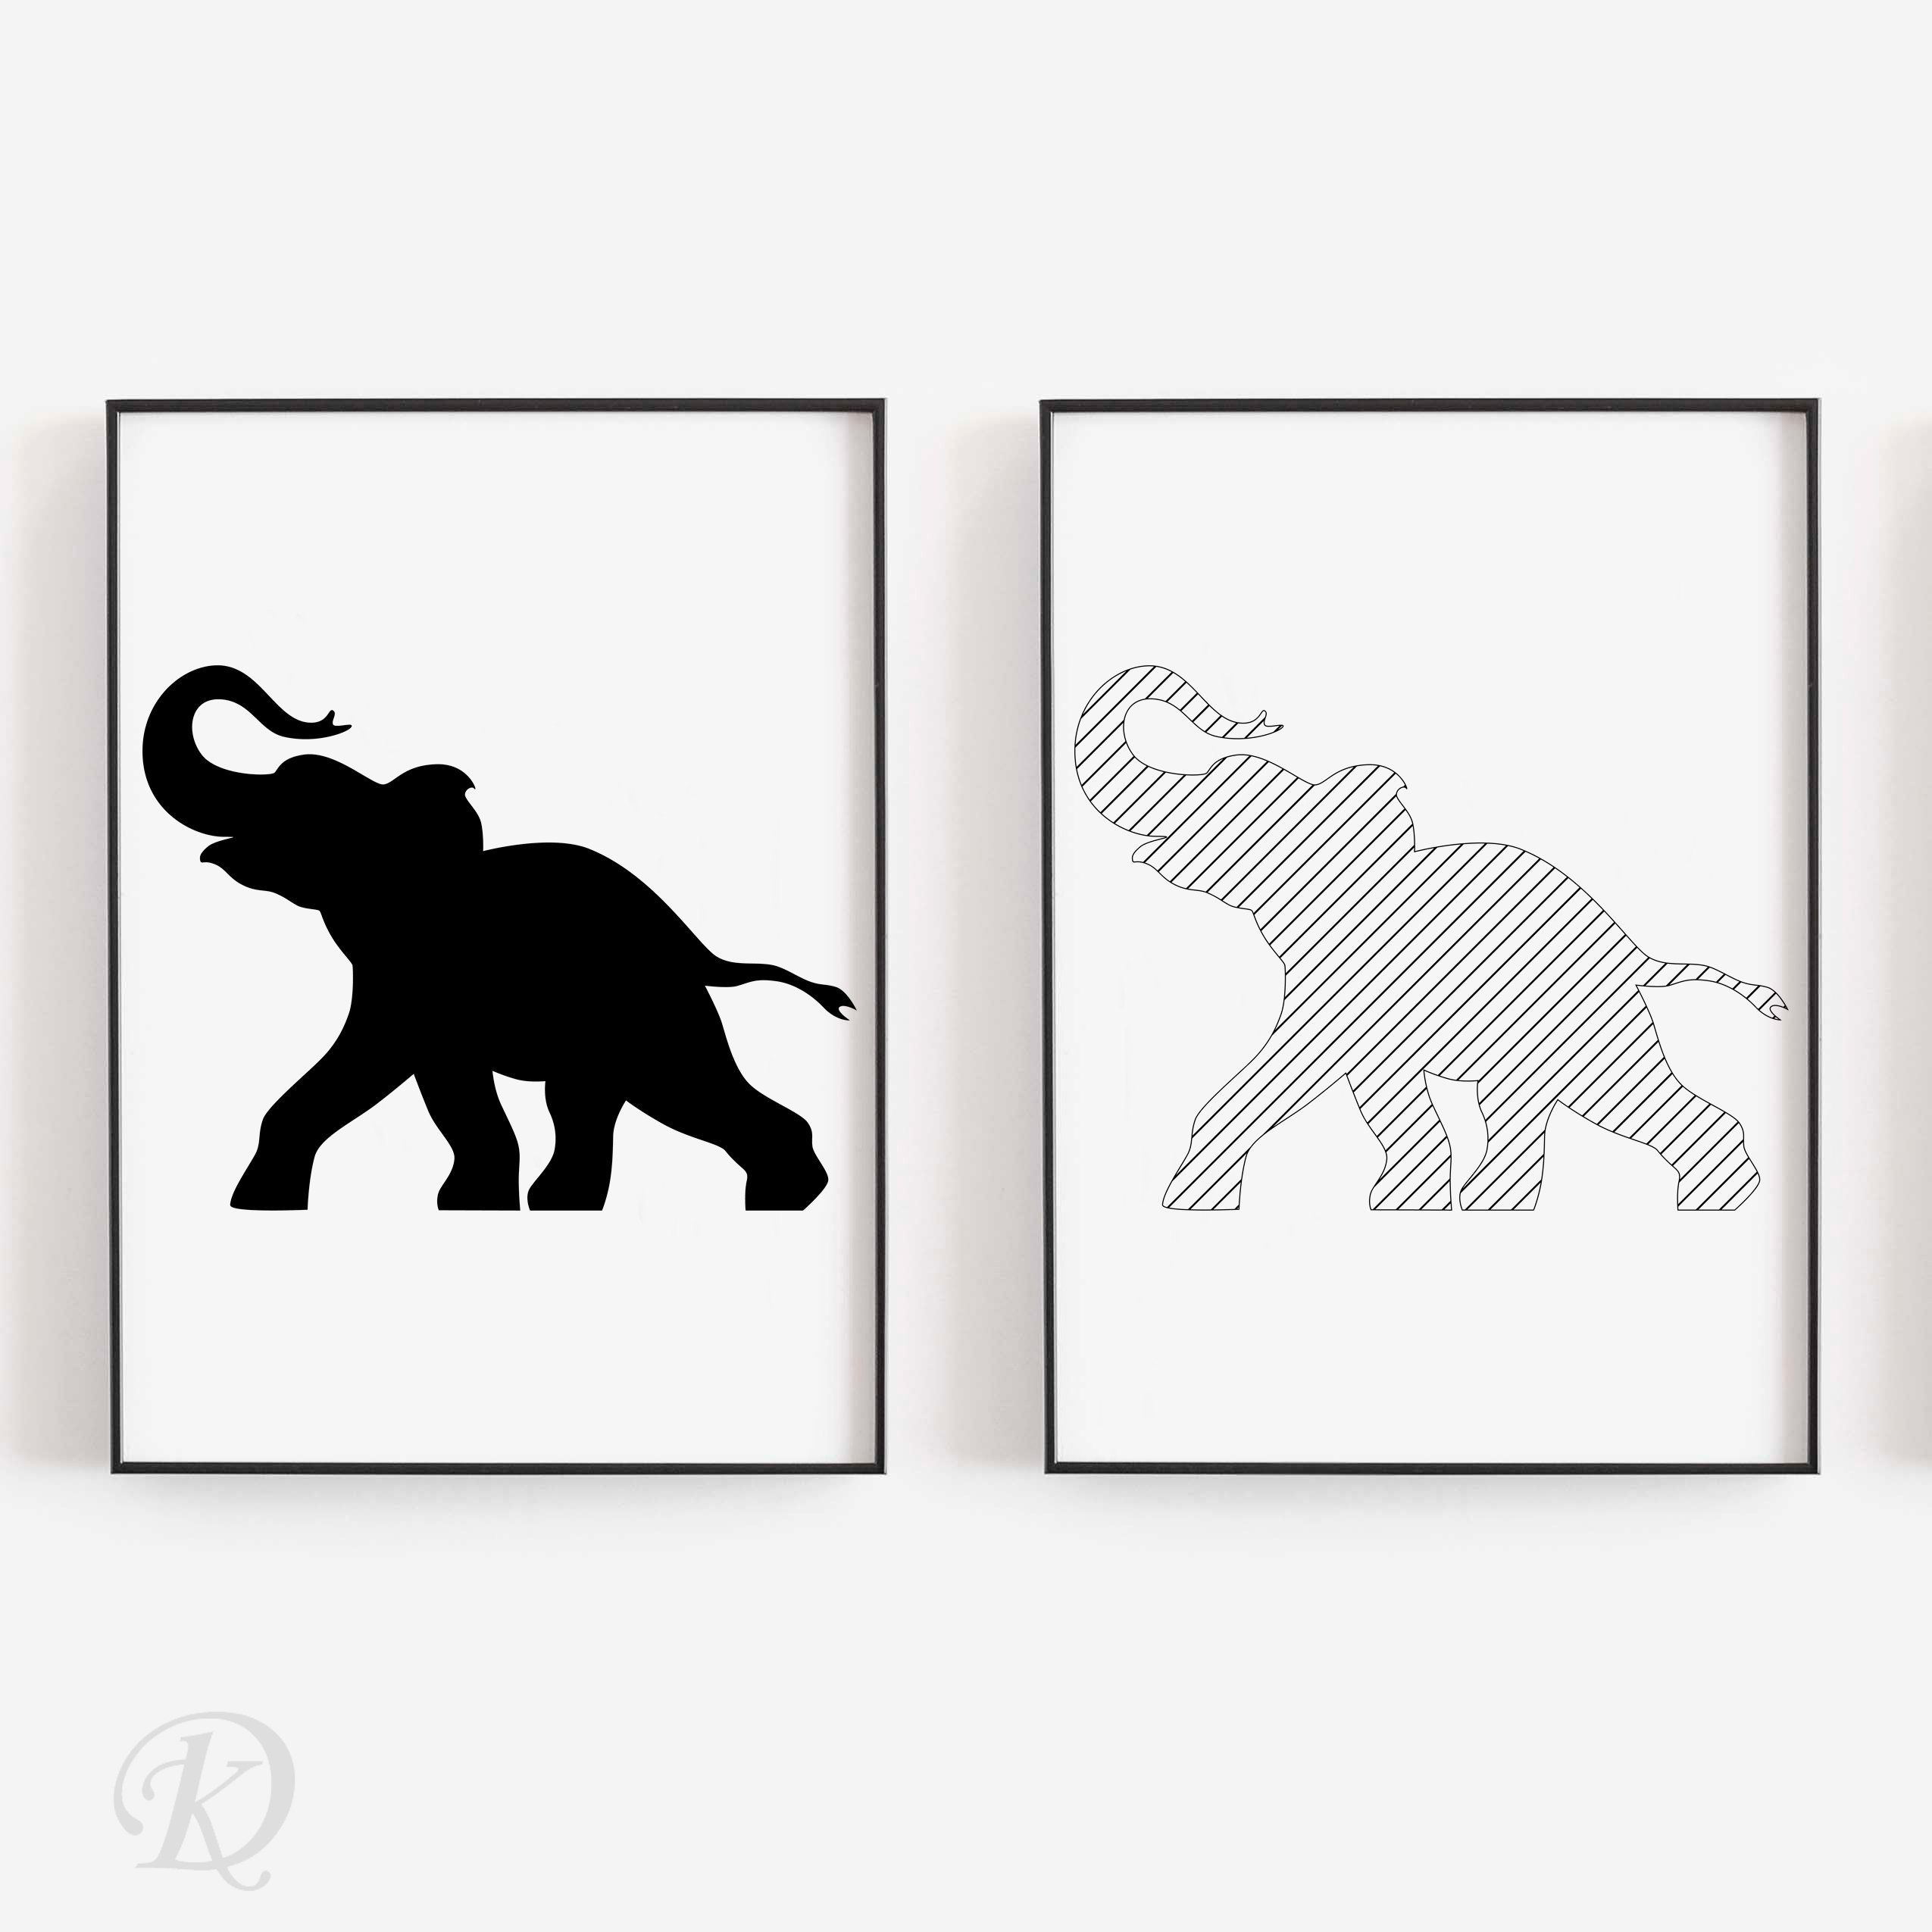 Elephant Png Elephant Print Nursery Wall Art Elephant Clipart Elephant T Shirt Elephant Pattern Eleph In 2020 Digital Art Prints Elephant Wall Art Drawing Prints Seeking for free elephant png png images? pinterest